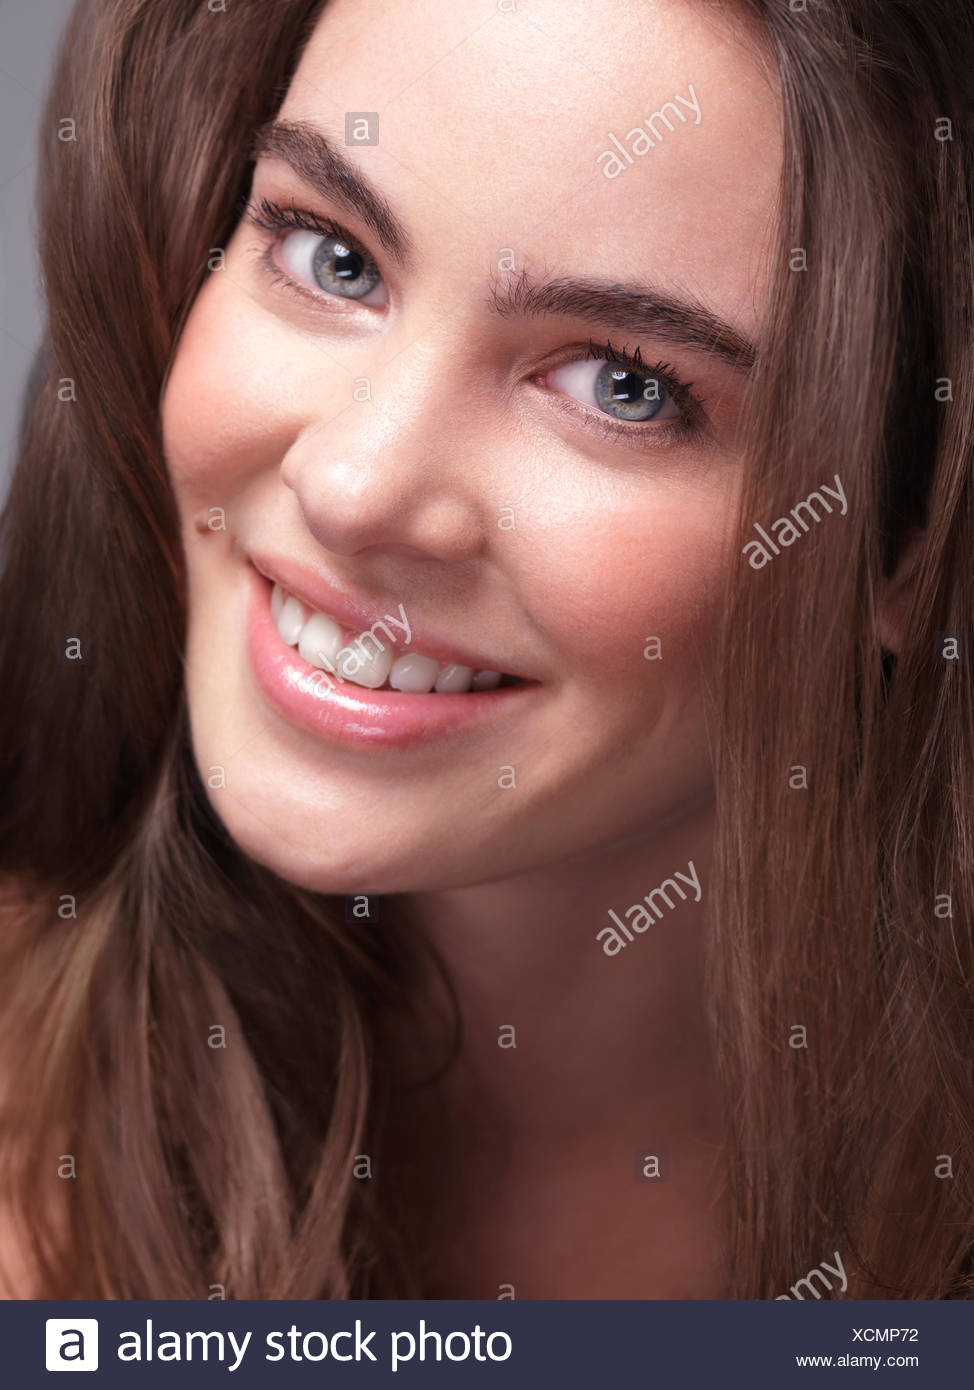 Smiling Woman With Long Hair And Bushy Eyebrows Stock Photo